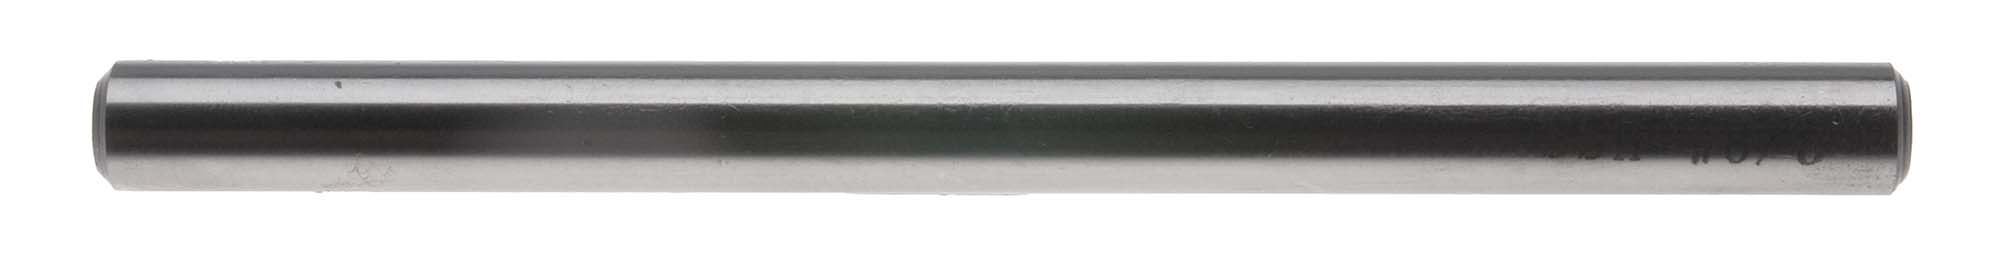 "7/64"" Jobber Length Drill Blank - High Speed Steel"